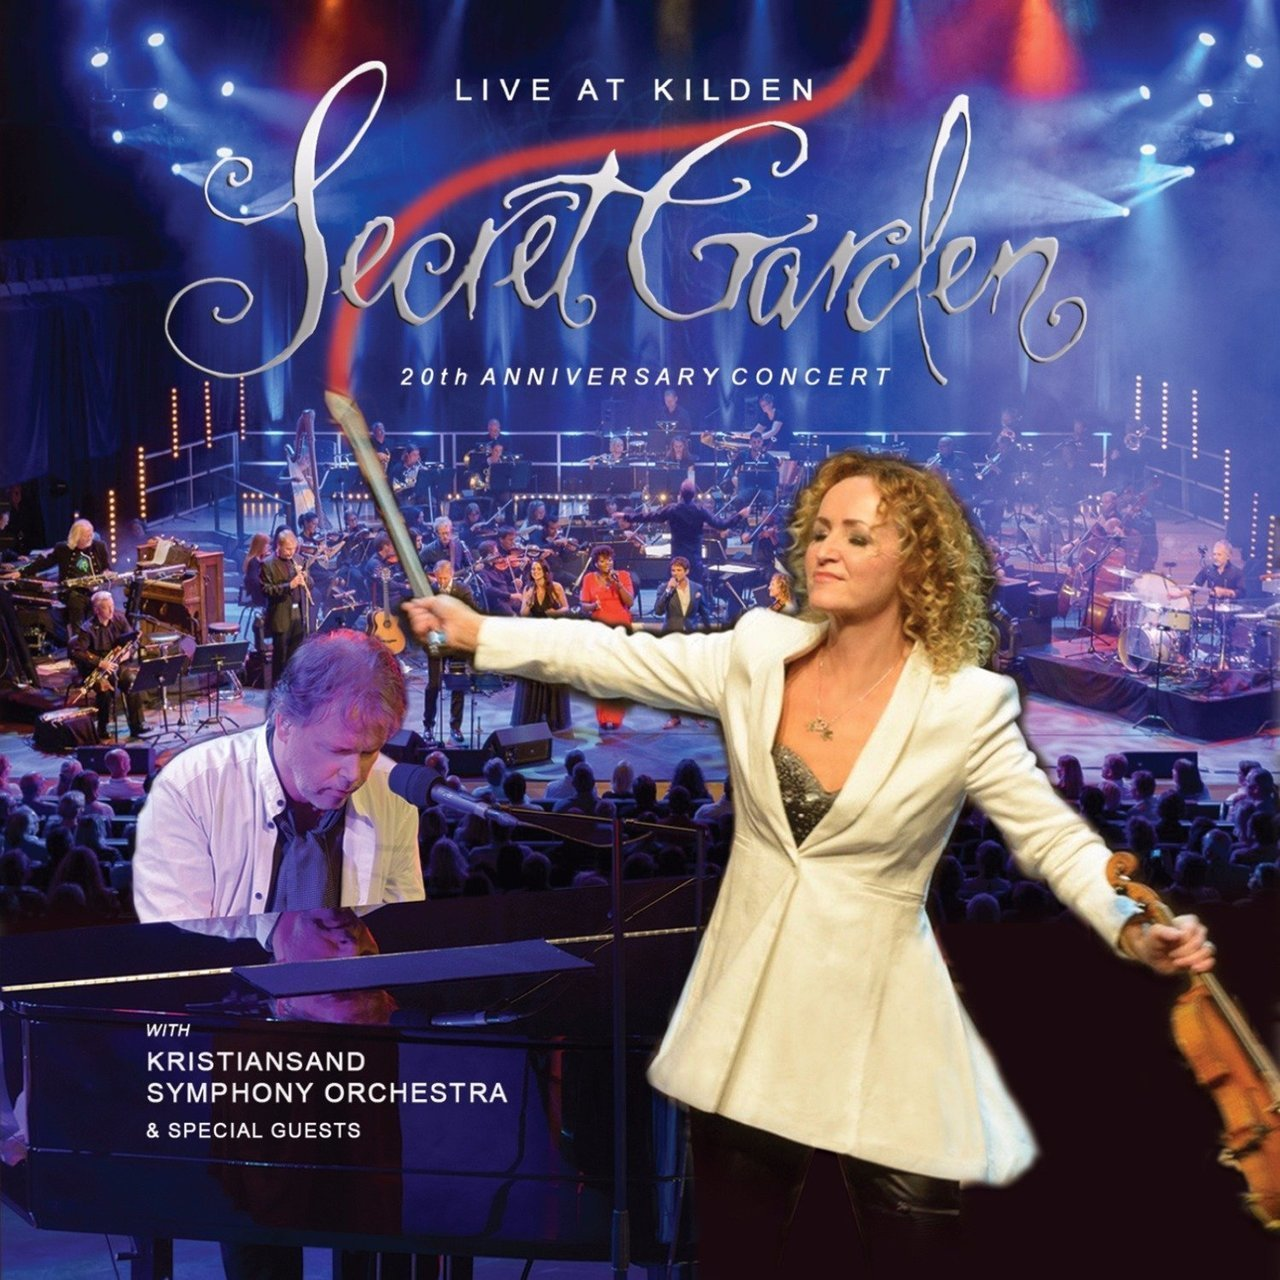 Live at kilden   20th anniversary concert by secret garden   cd